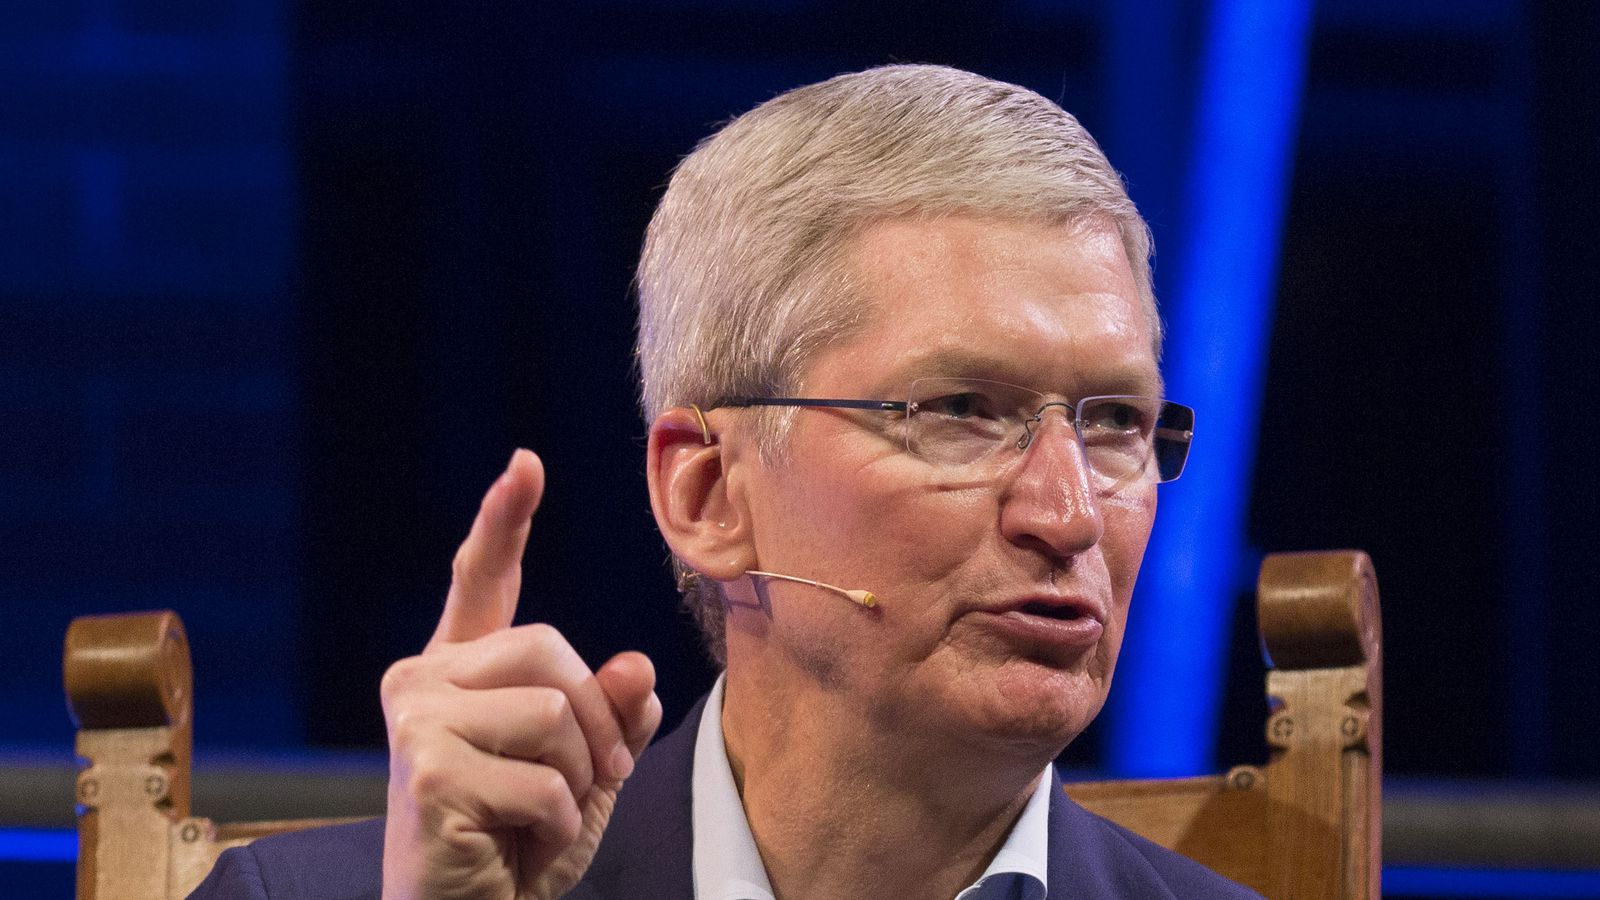 We read that 10,000-word interview with Apple CEO Tim Cook so you don't have to